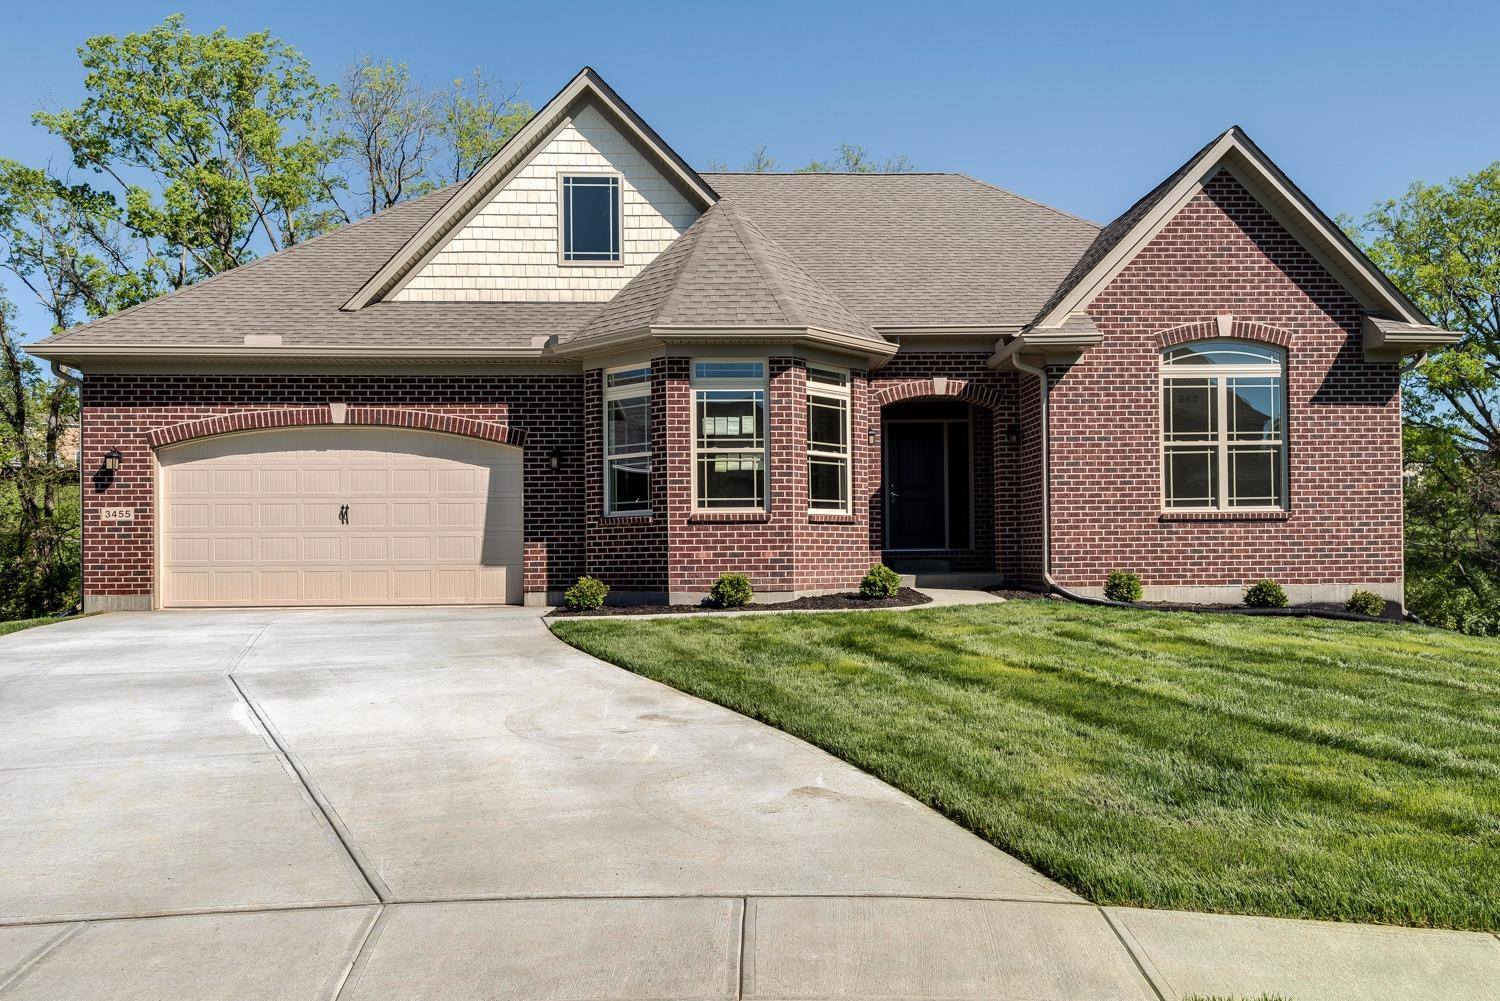 3455 Golfview Ct Fairfield, OH